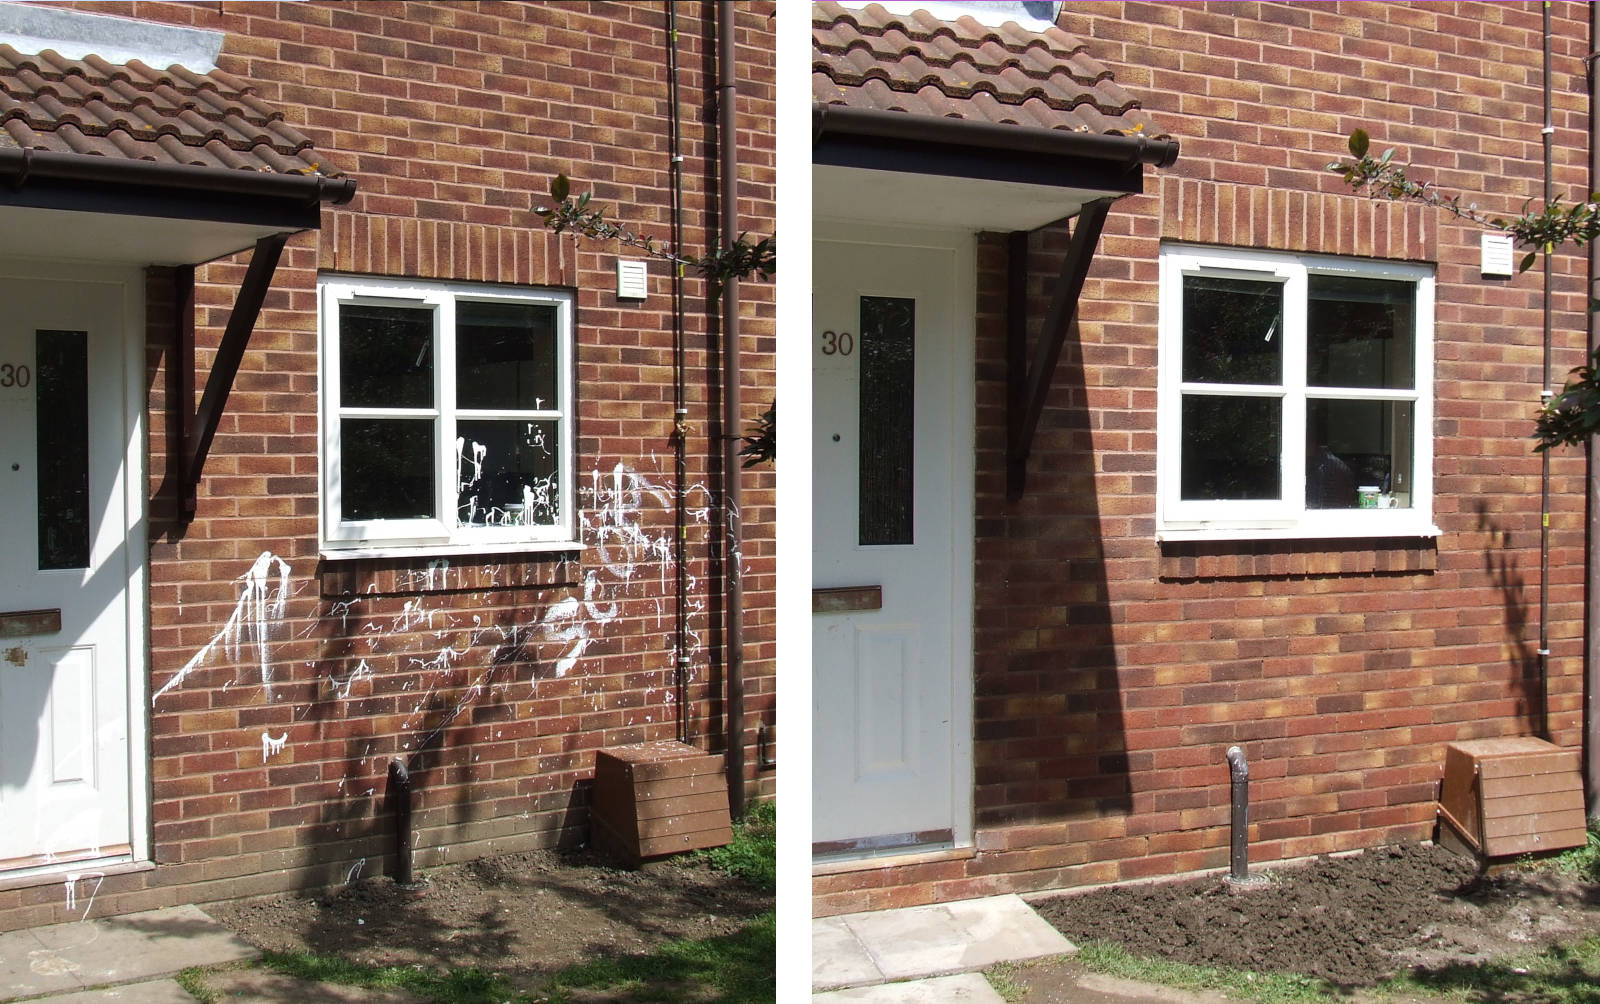 image showing Graffiti is one of the problems that blight all areas